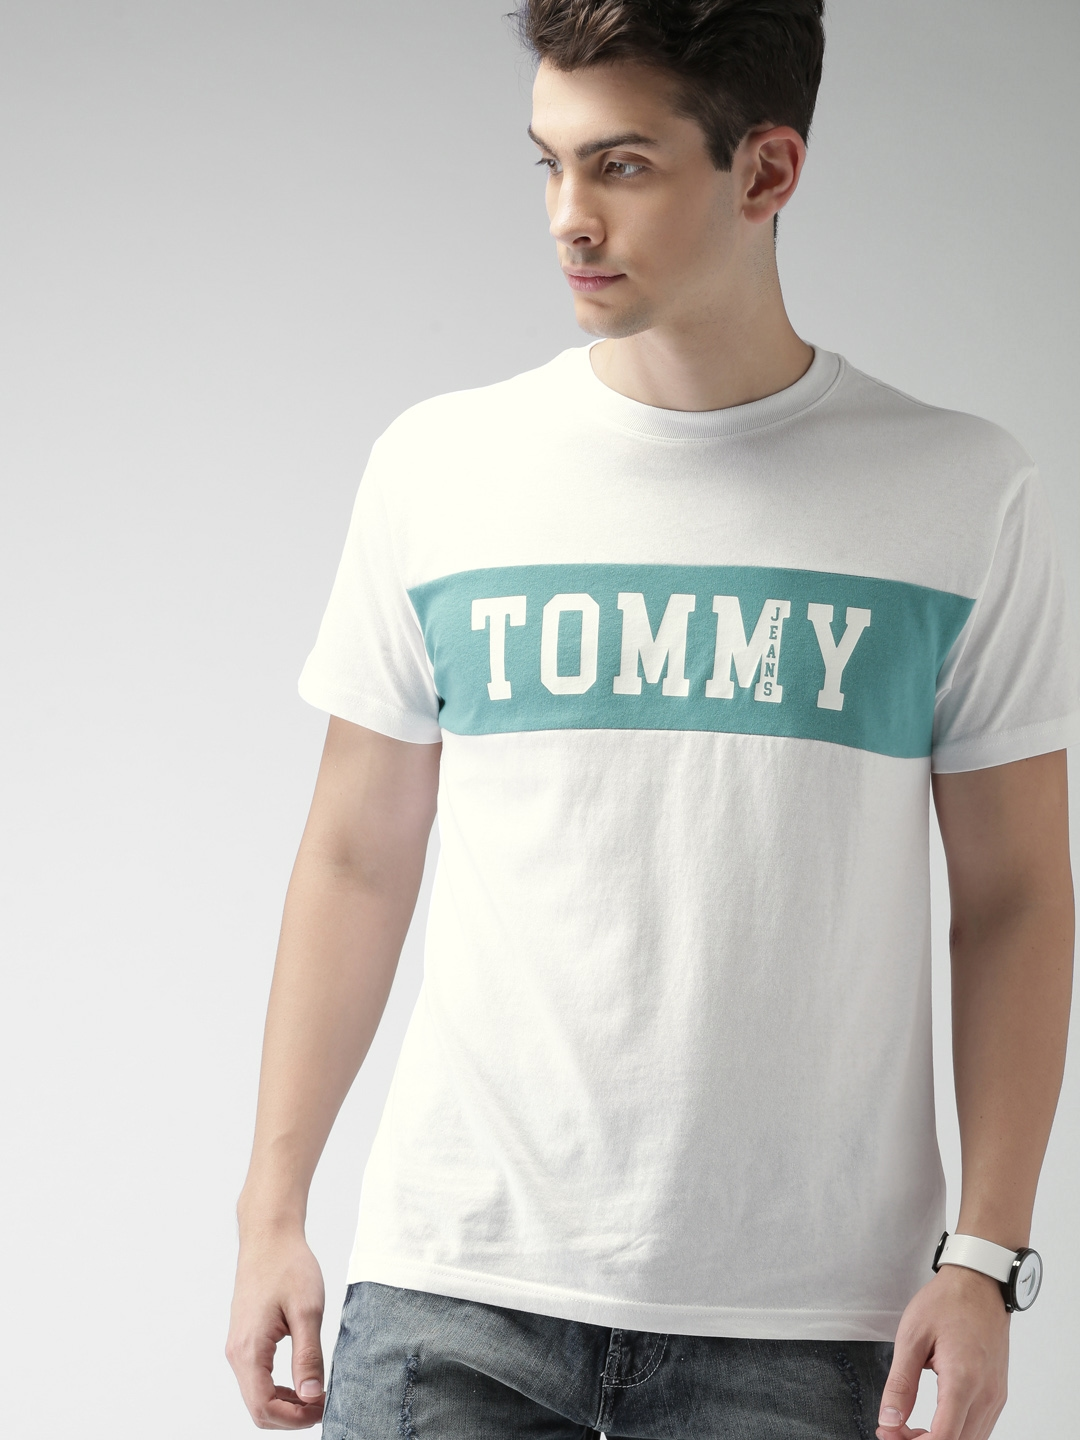 6c1a51a4 Buy Tommy Hilfiger Men White & Green Printed Round Neck T Shirt ...